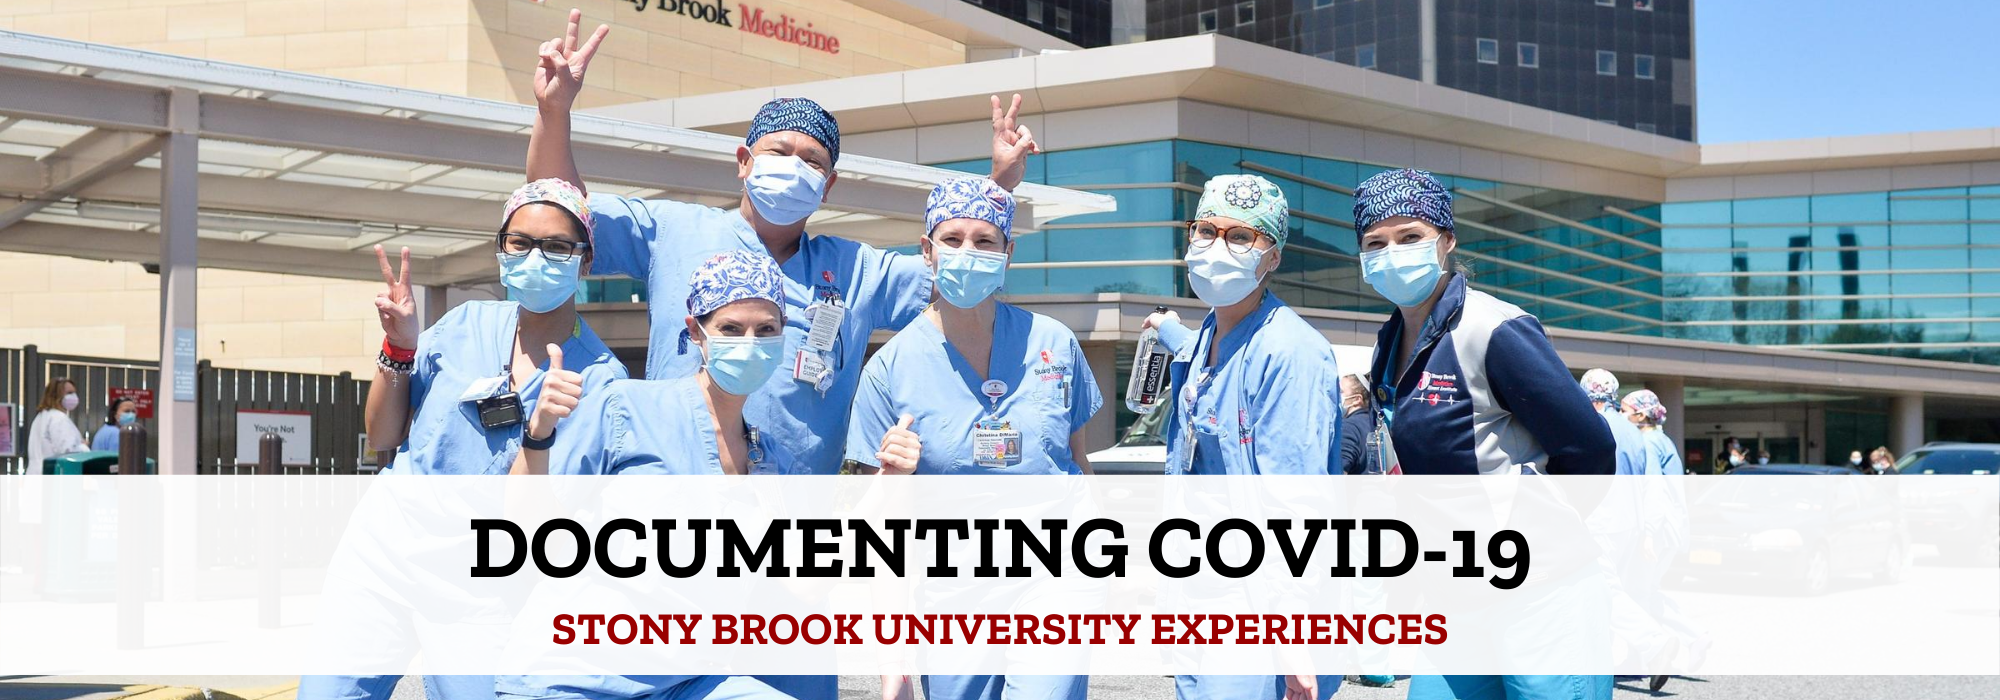 "Stony Brook medical staff overlaid with text reading ""Documenting COVID-19: Stony Brook University Experiences"""